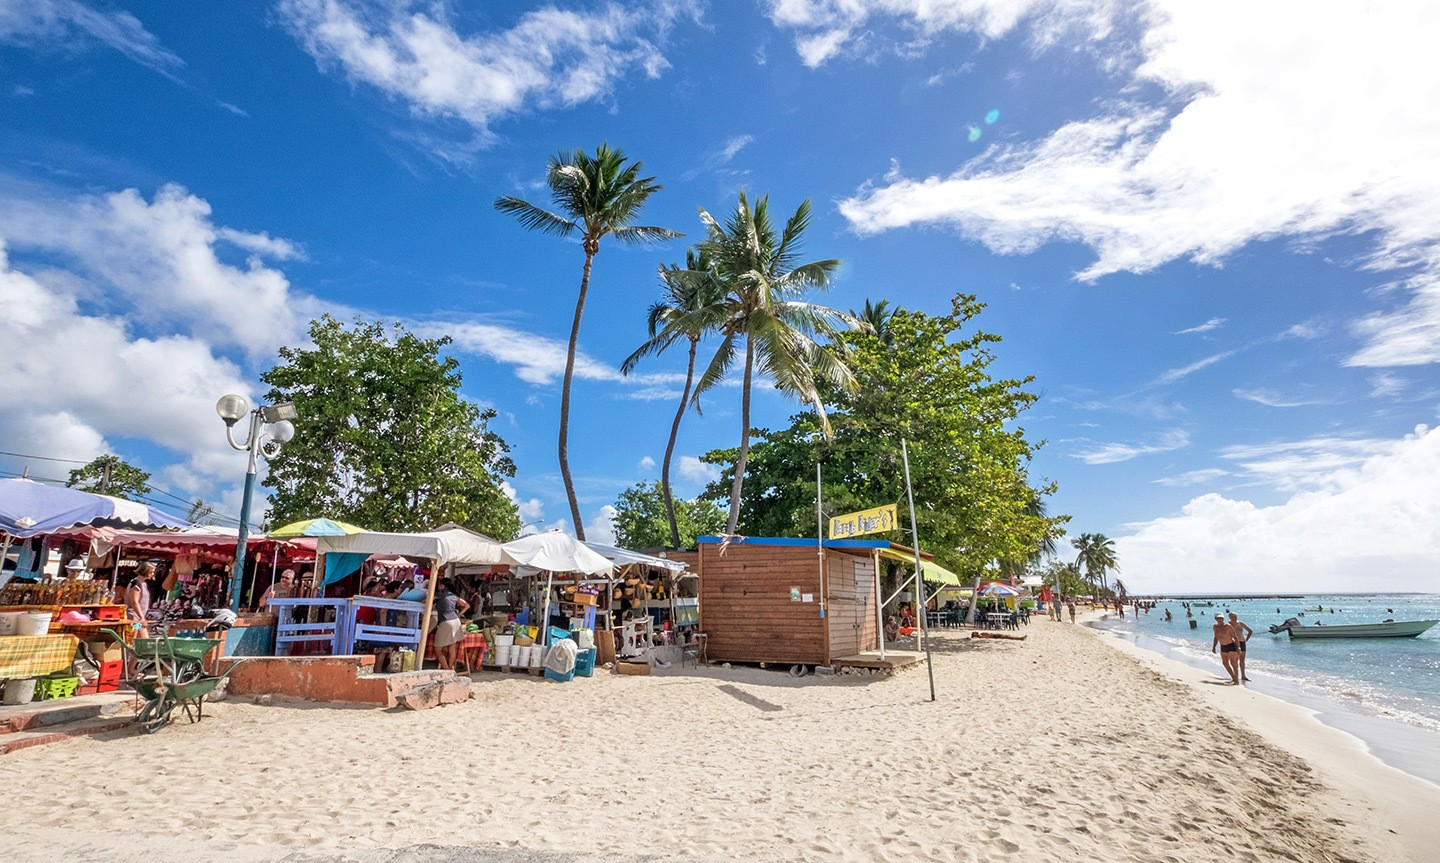 Sainte-Anne beach, one of the best things to do in Guadeloupe